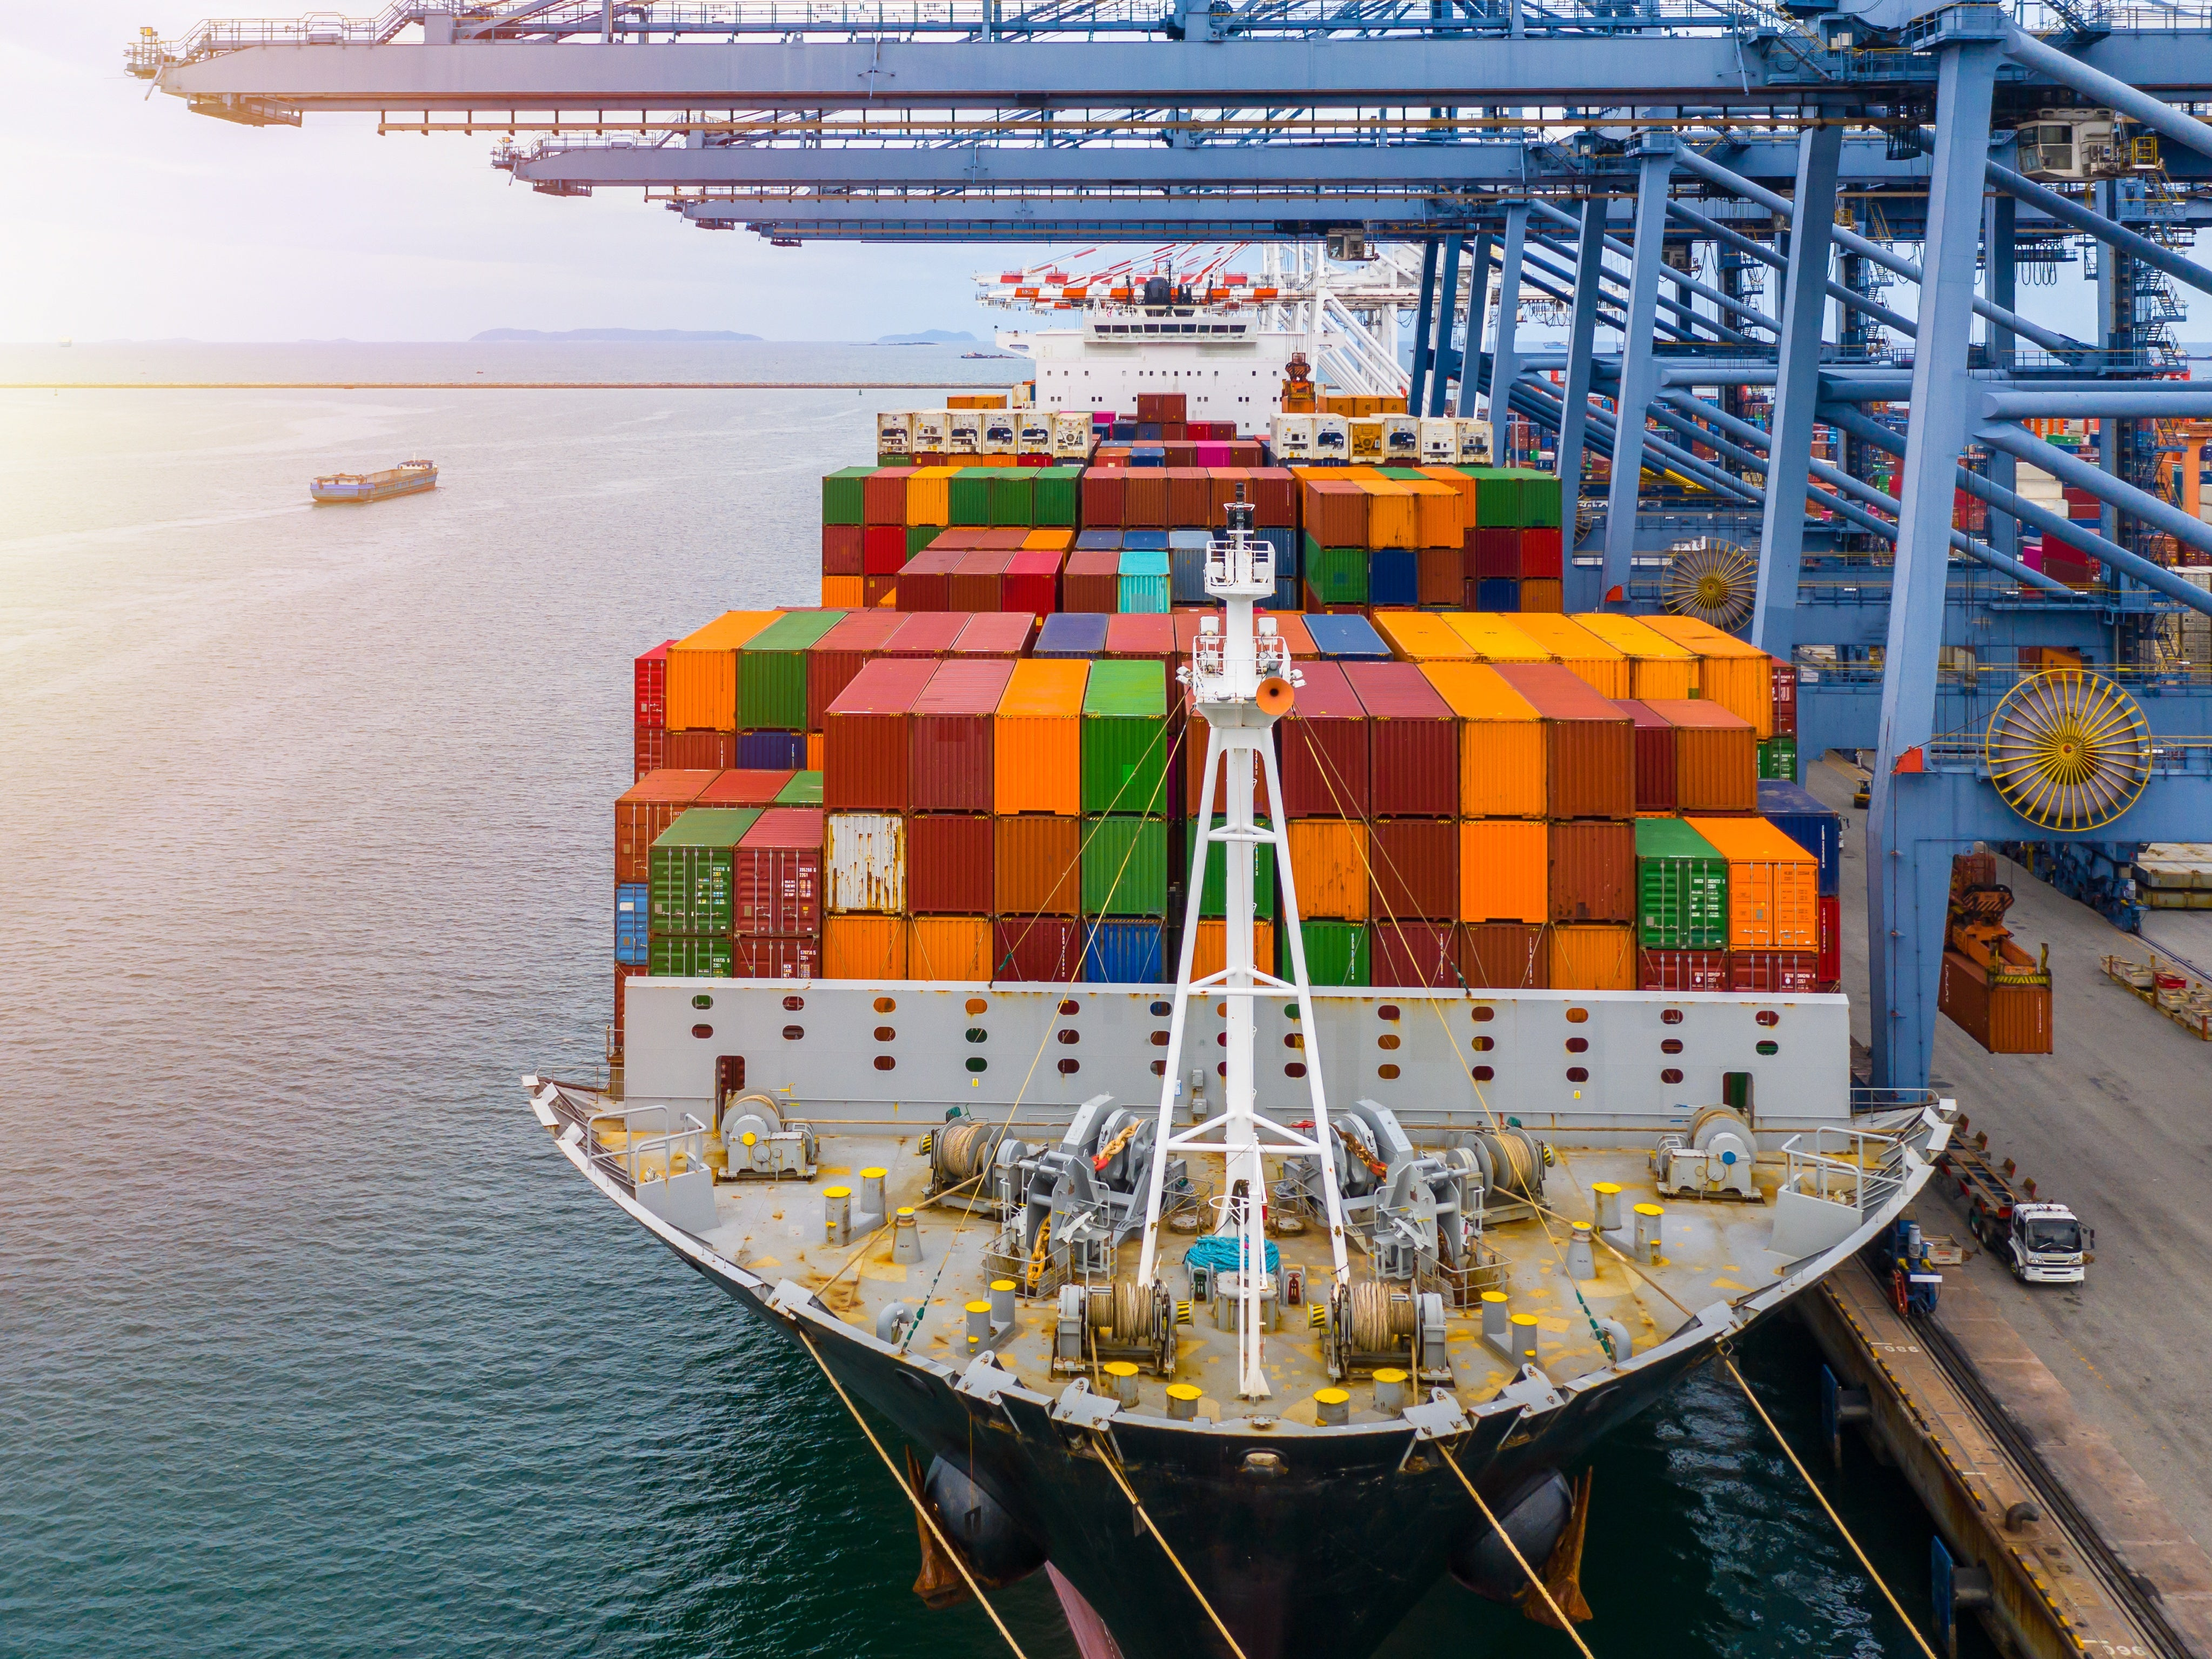 Can a buyer's invalid vessel nomination entitle a seller to terminate its FOB contract?